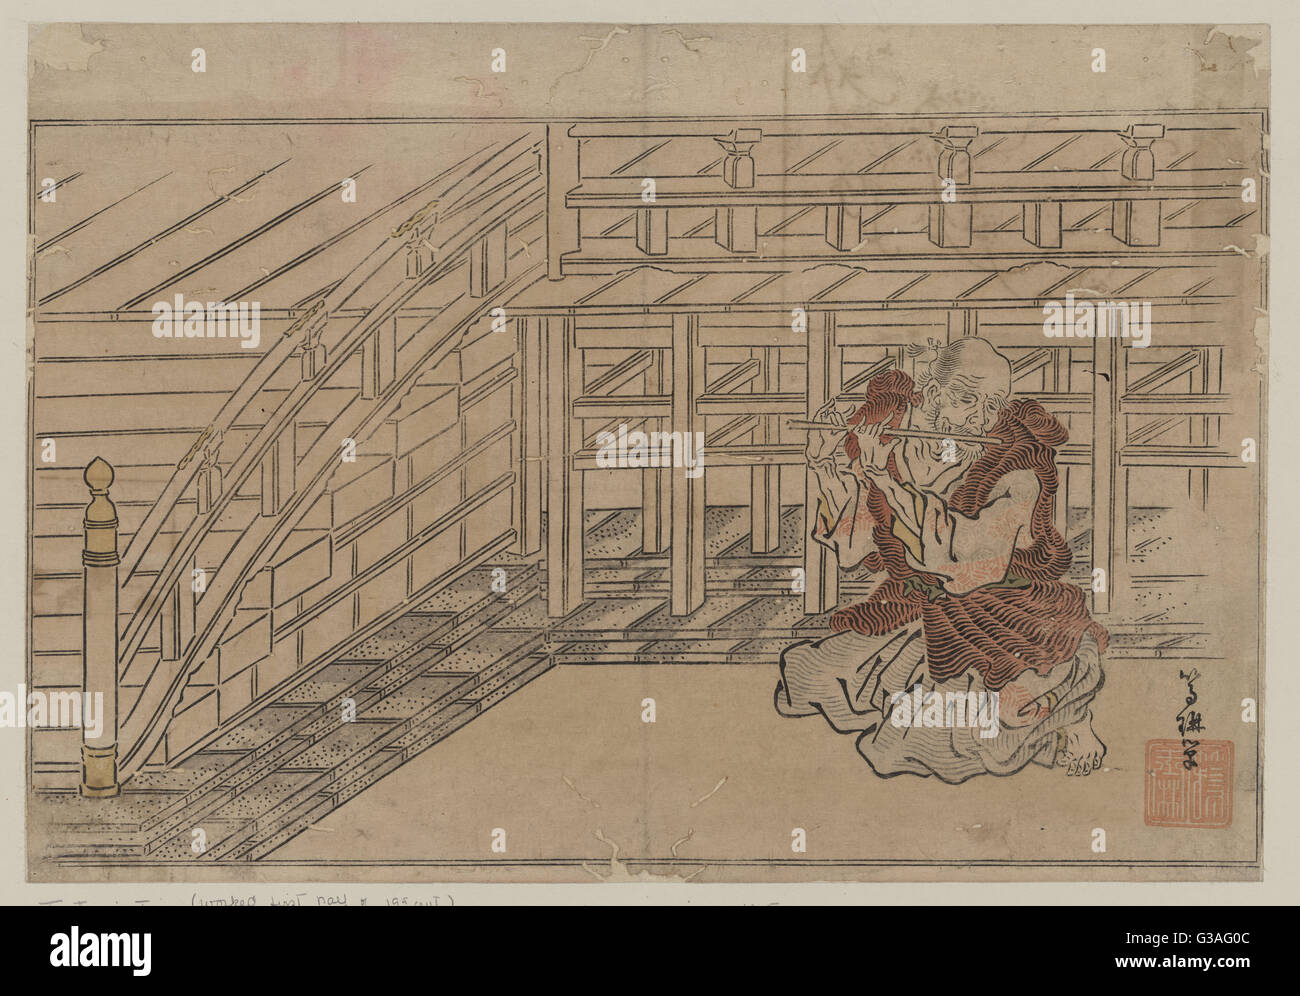 Old man playing a flute. Print shows an old man kneeling on the ground playing a flute. Date 1795 or 1796. - Stock Image